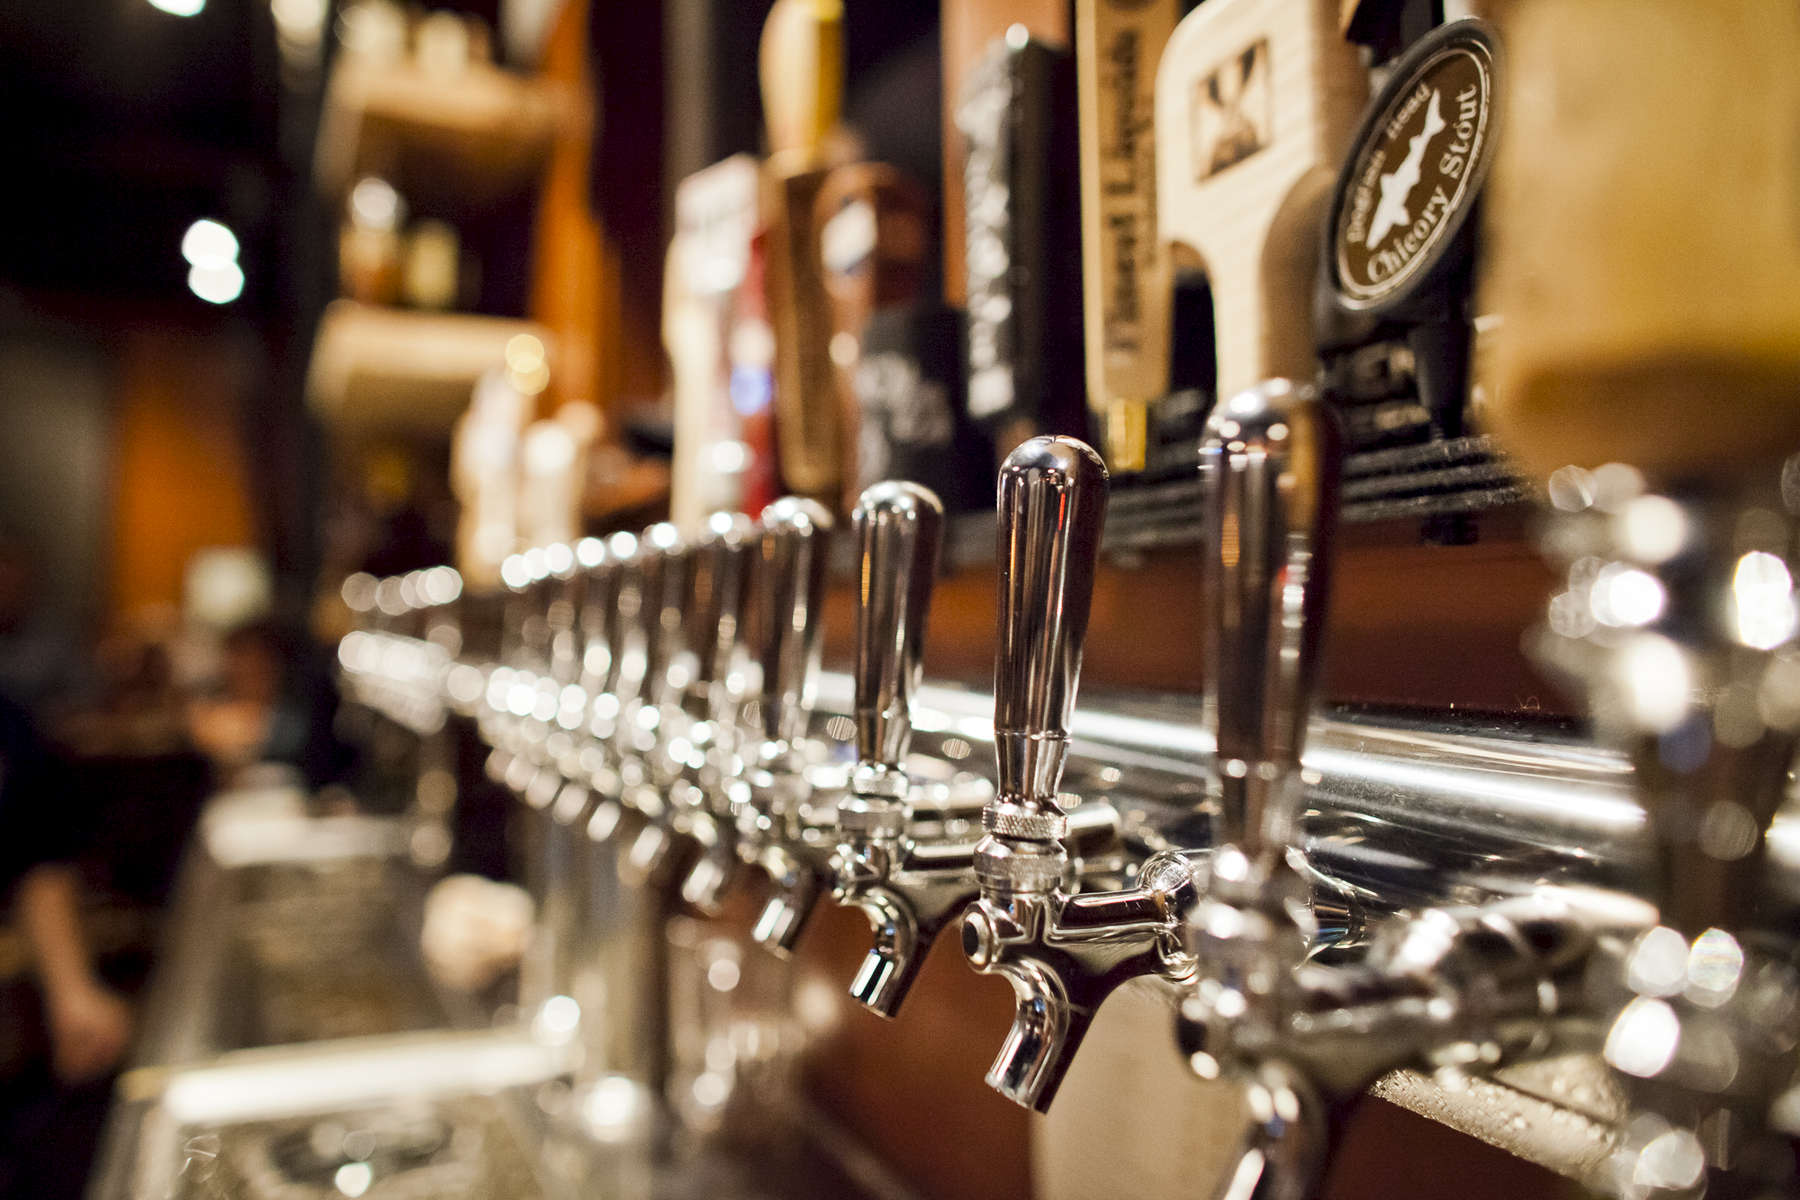 Detail of taps at Prohibition Pig in Waterbury, Vermont. photo by Monica Donovan for the Boston Globe